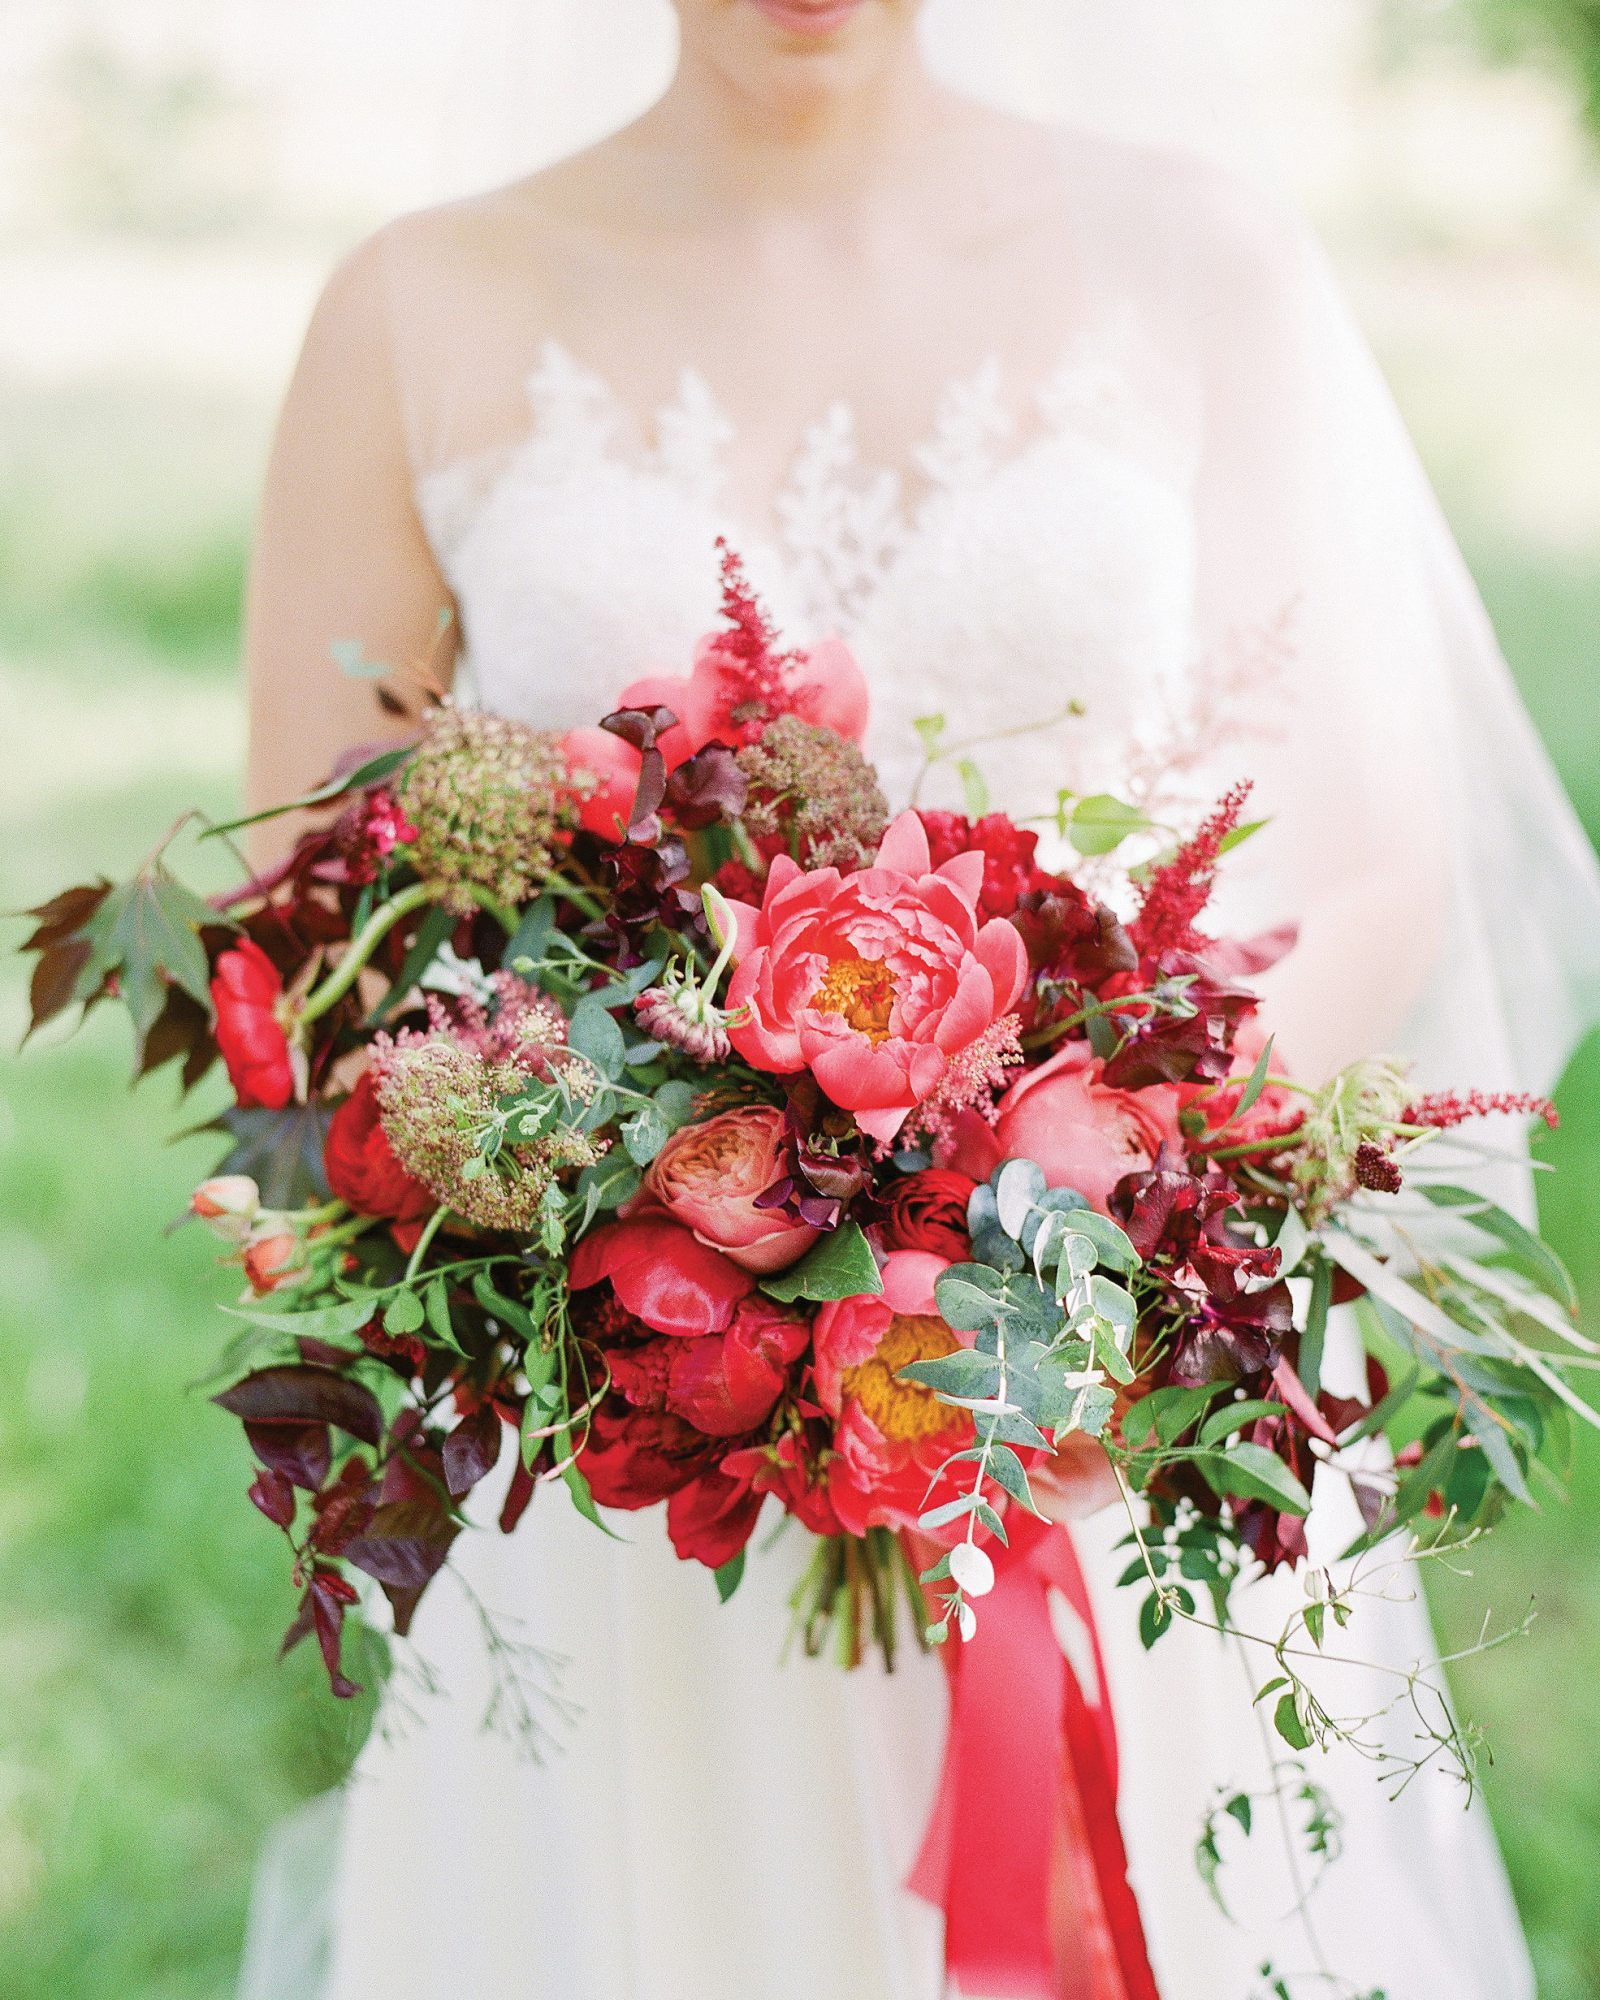 sasha-tyler-wedding-virginia-bridal-bouquet-01-s112867.jpg